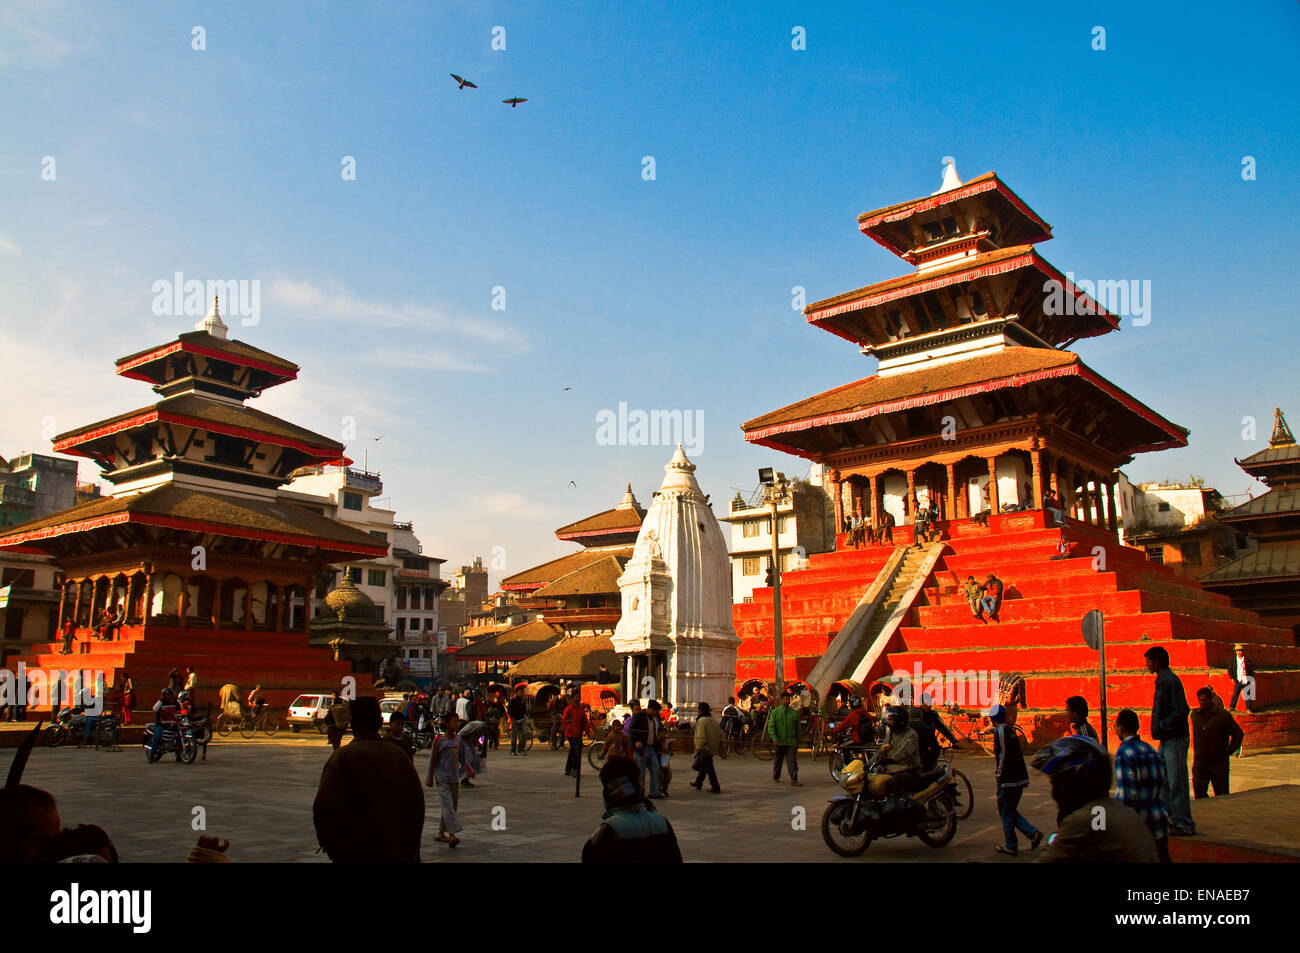 Kathmandu's World Heritage Site of Durbar Square is a spectacular complex of courtyards, temples and palaces - Stock Image